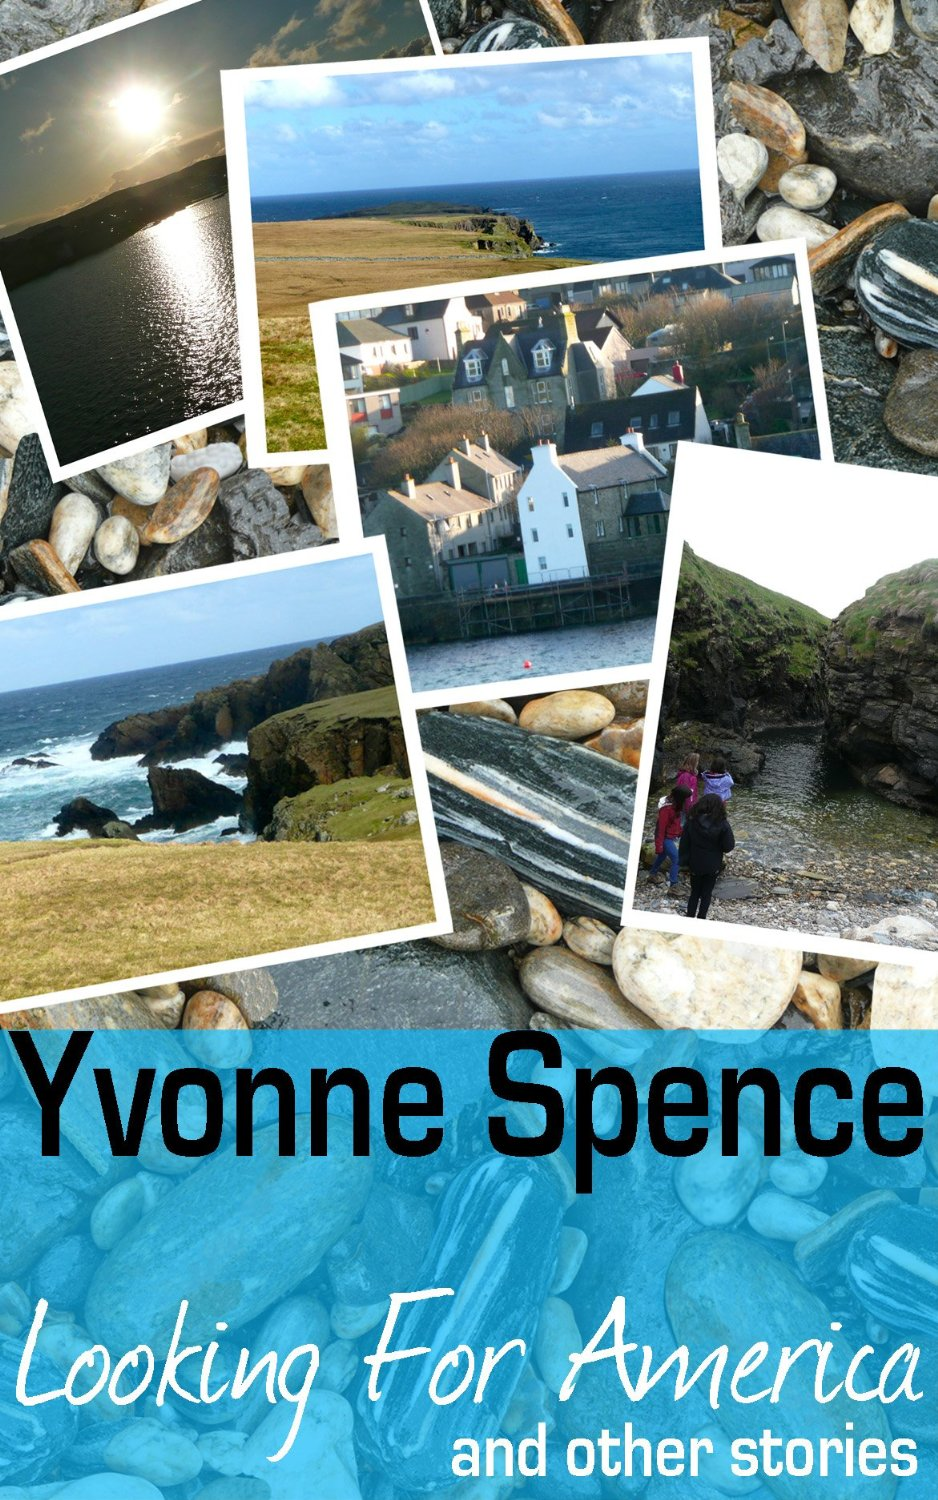 looking for america, Yvonne Spence